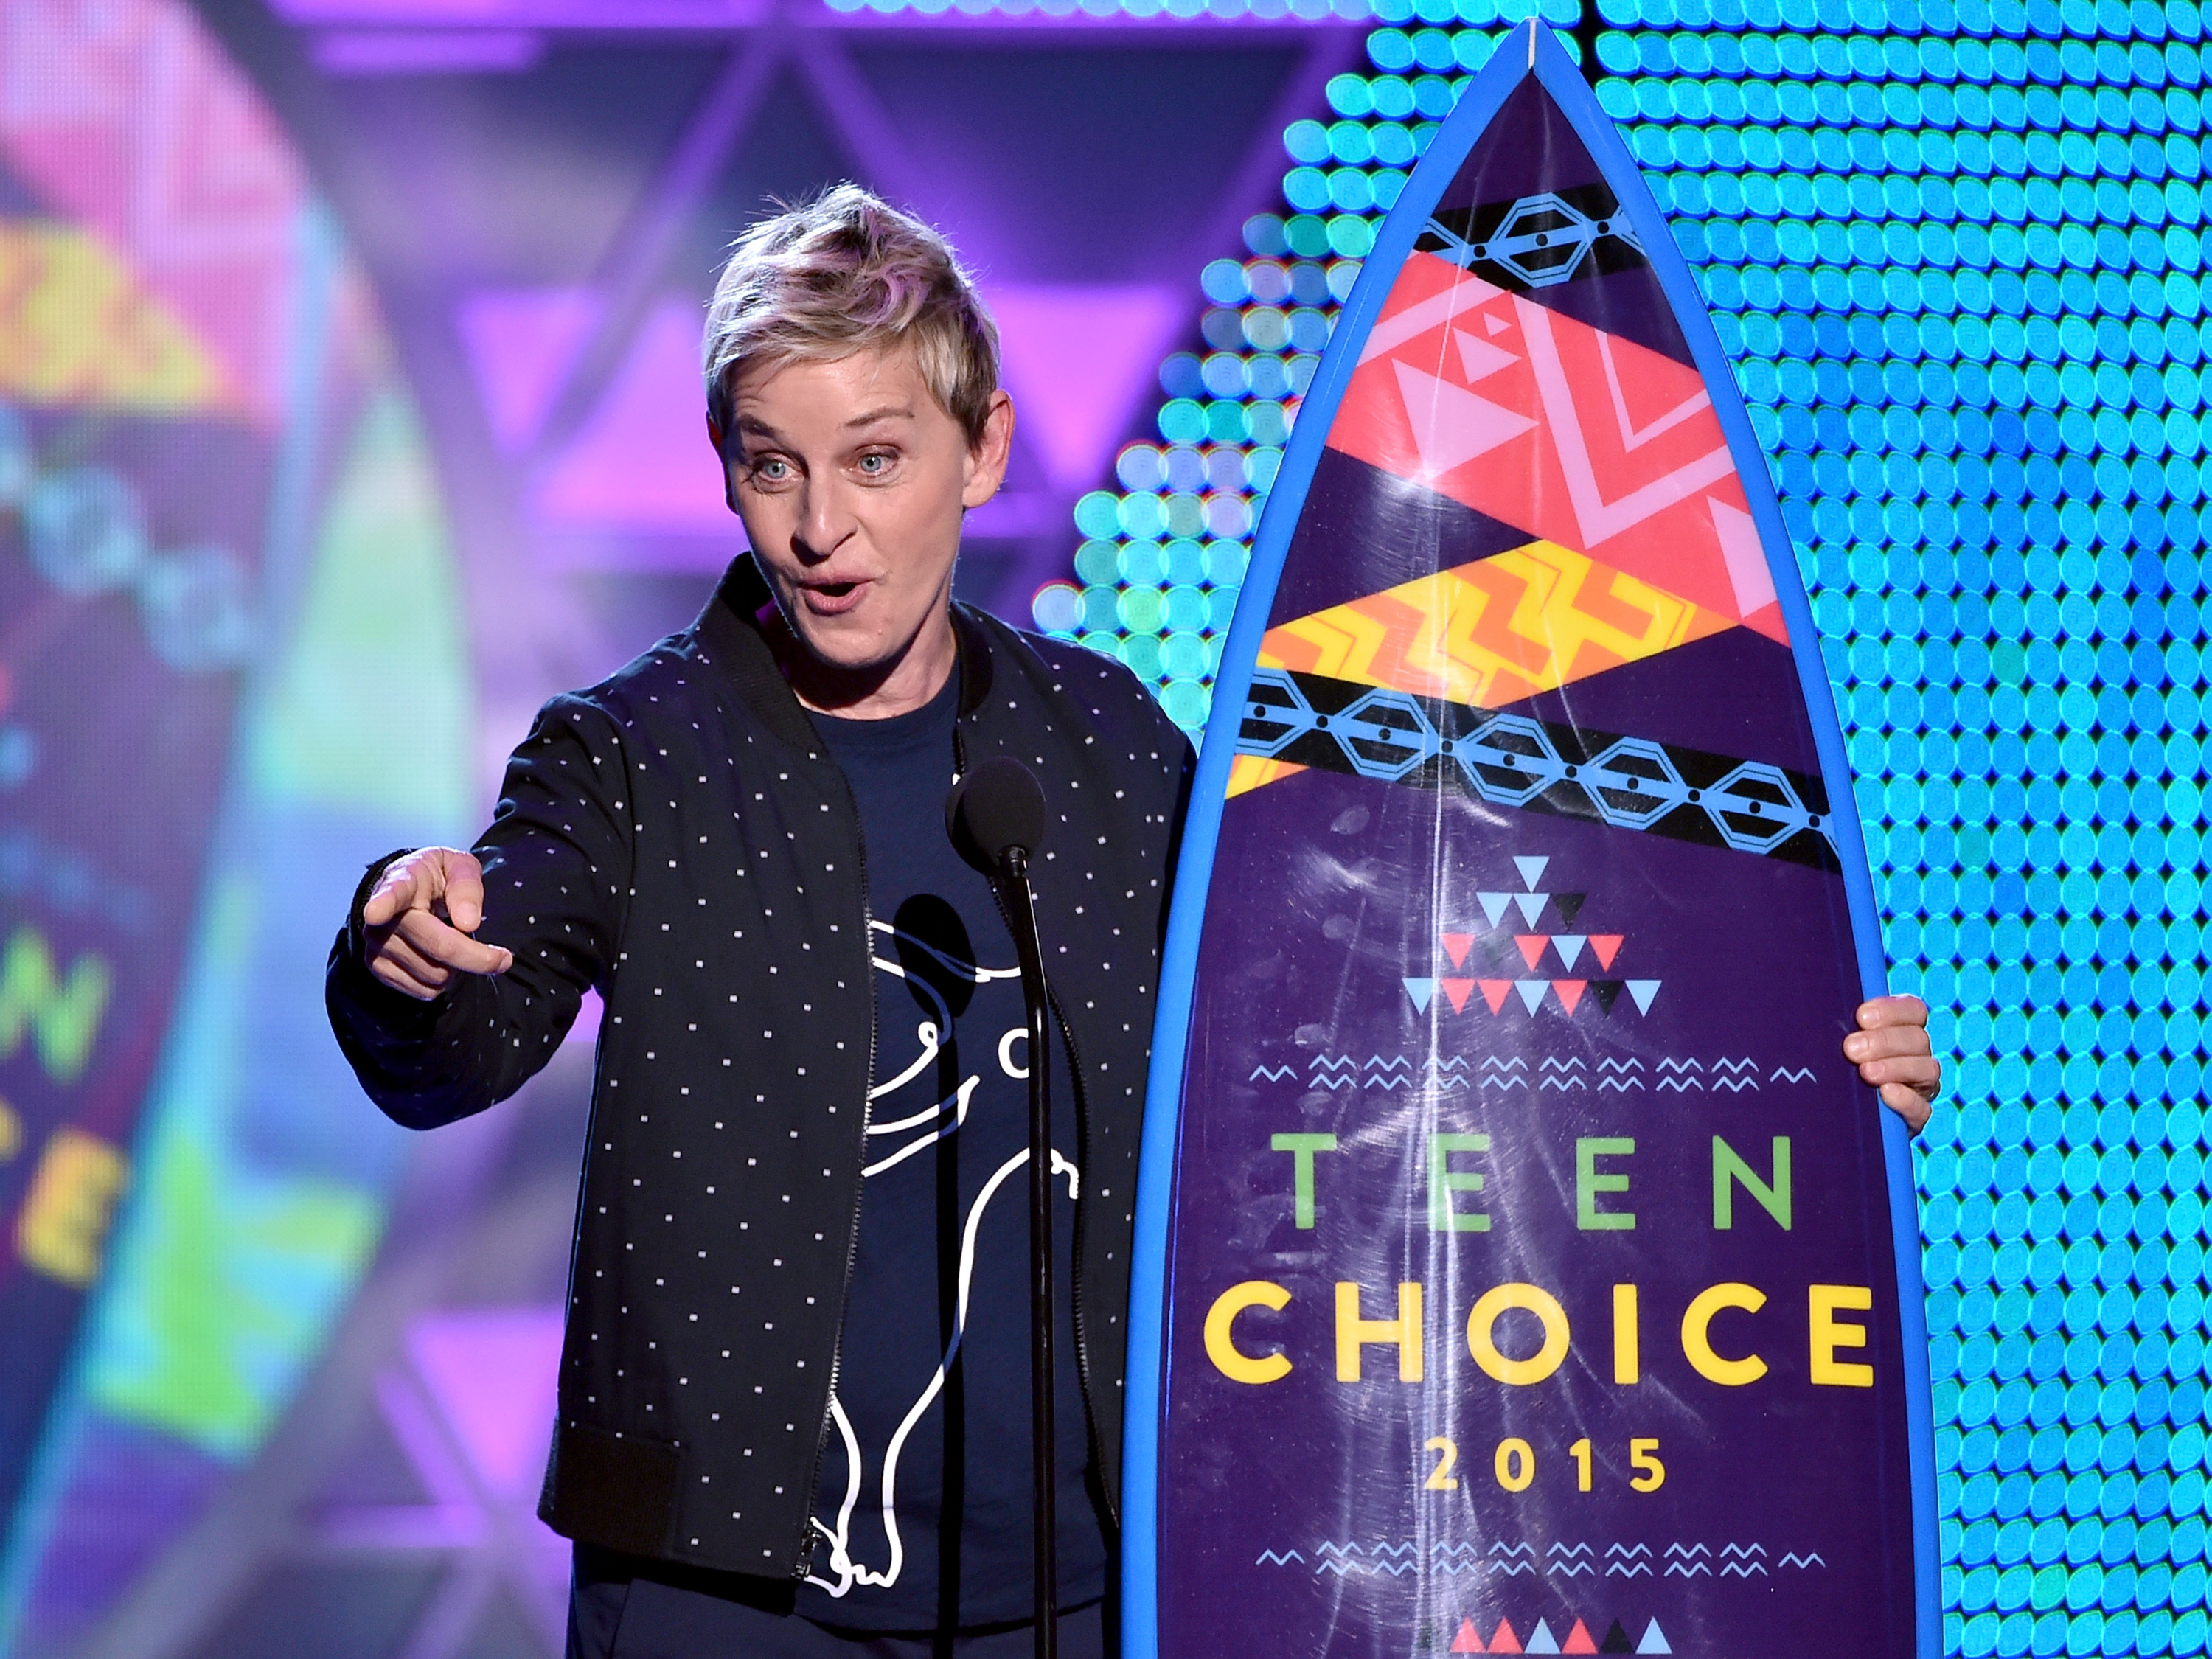 2015 Teen Choice Awards Nominations: Painstakingly Engineered for Peak Drama